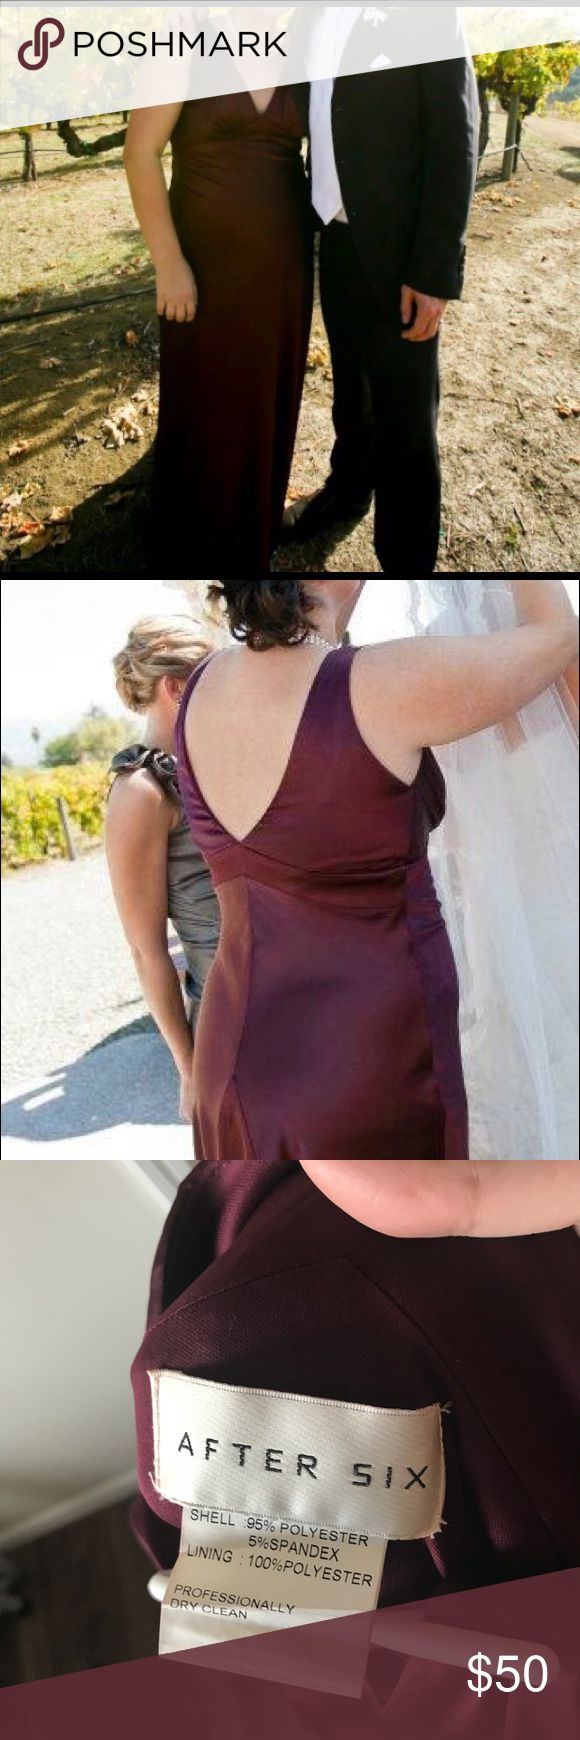 Satin v-neck gown. Size 16L. Color Bordeaux. Worn once as a bridesmaid. Brand After Six, size 16 L and hemmed. Beautiful color and fabric for formal party. Comes from a smoke free home. After Six Dresses Wedding